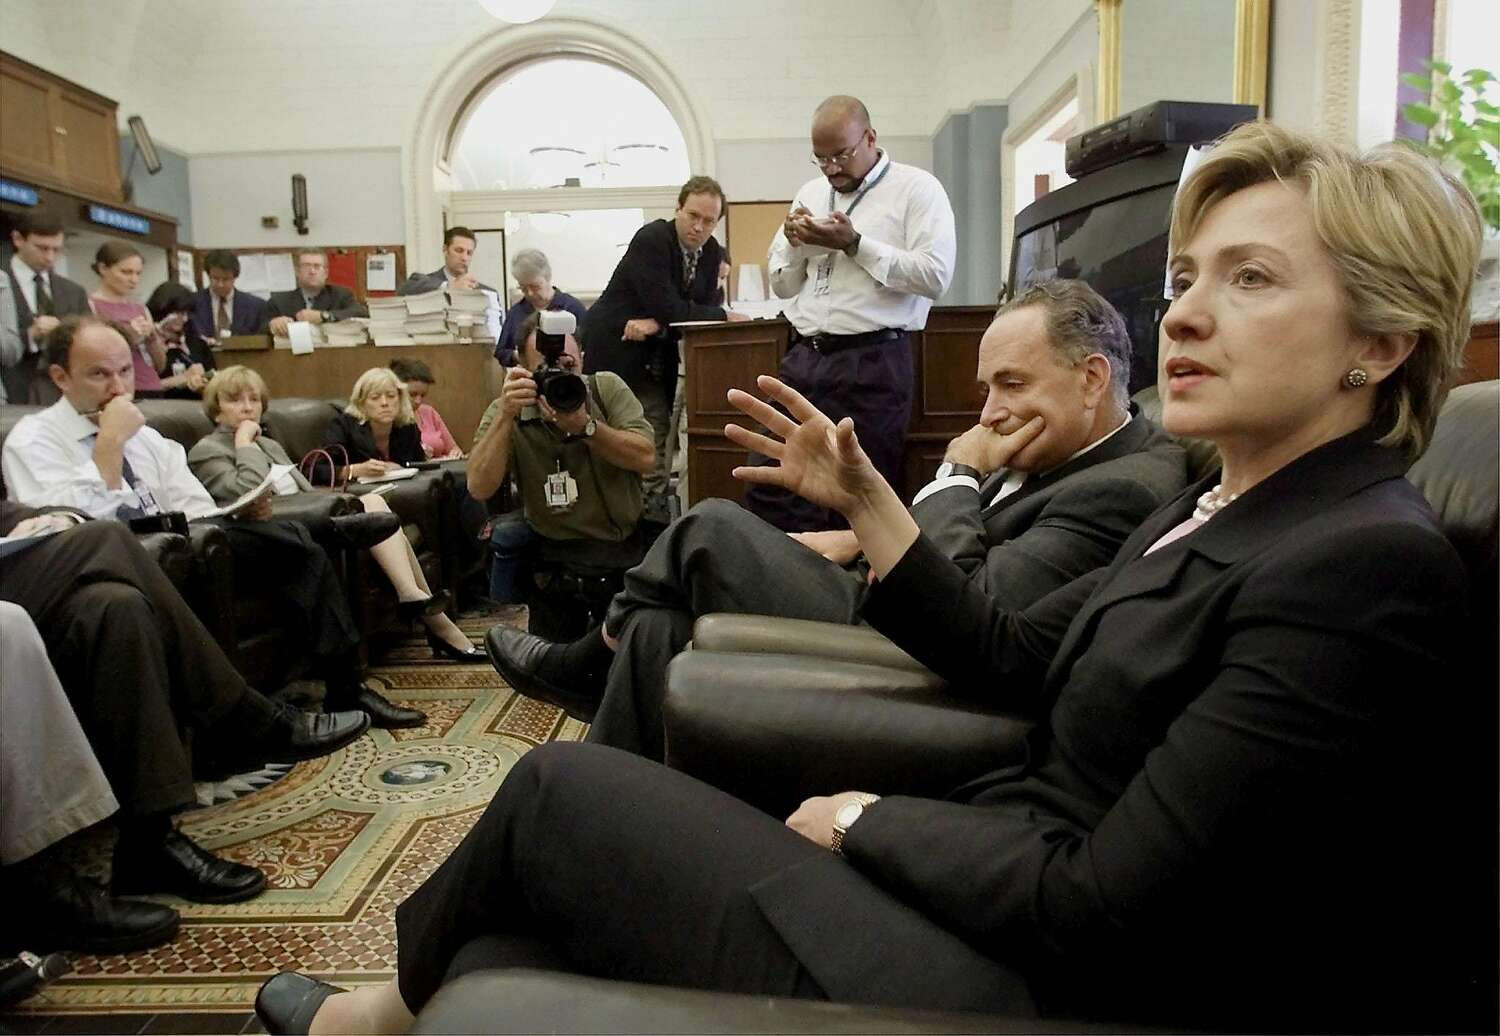 Sen. Hillary Clinton and Charles Schumer speak with members of the press at the U.S. Capitol on Sept. 12, 2001.